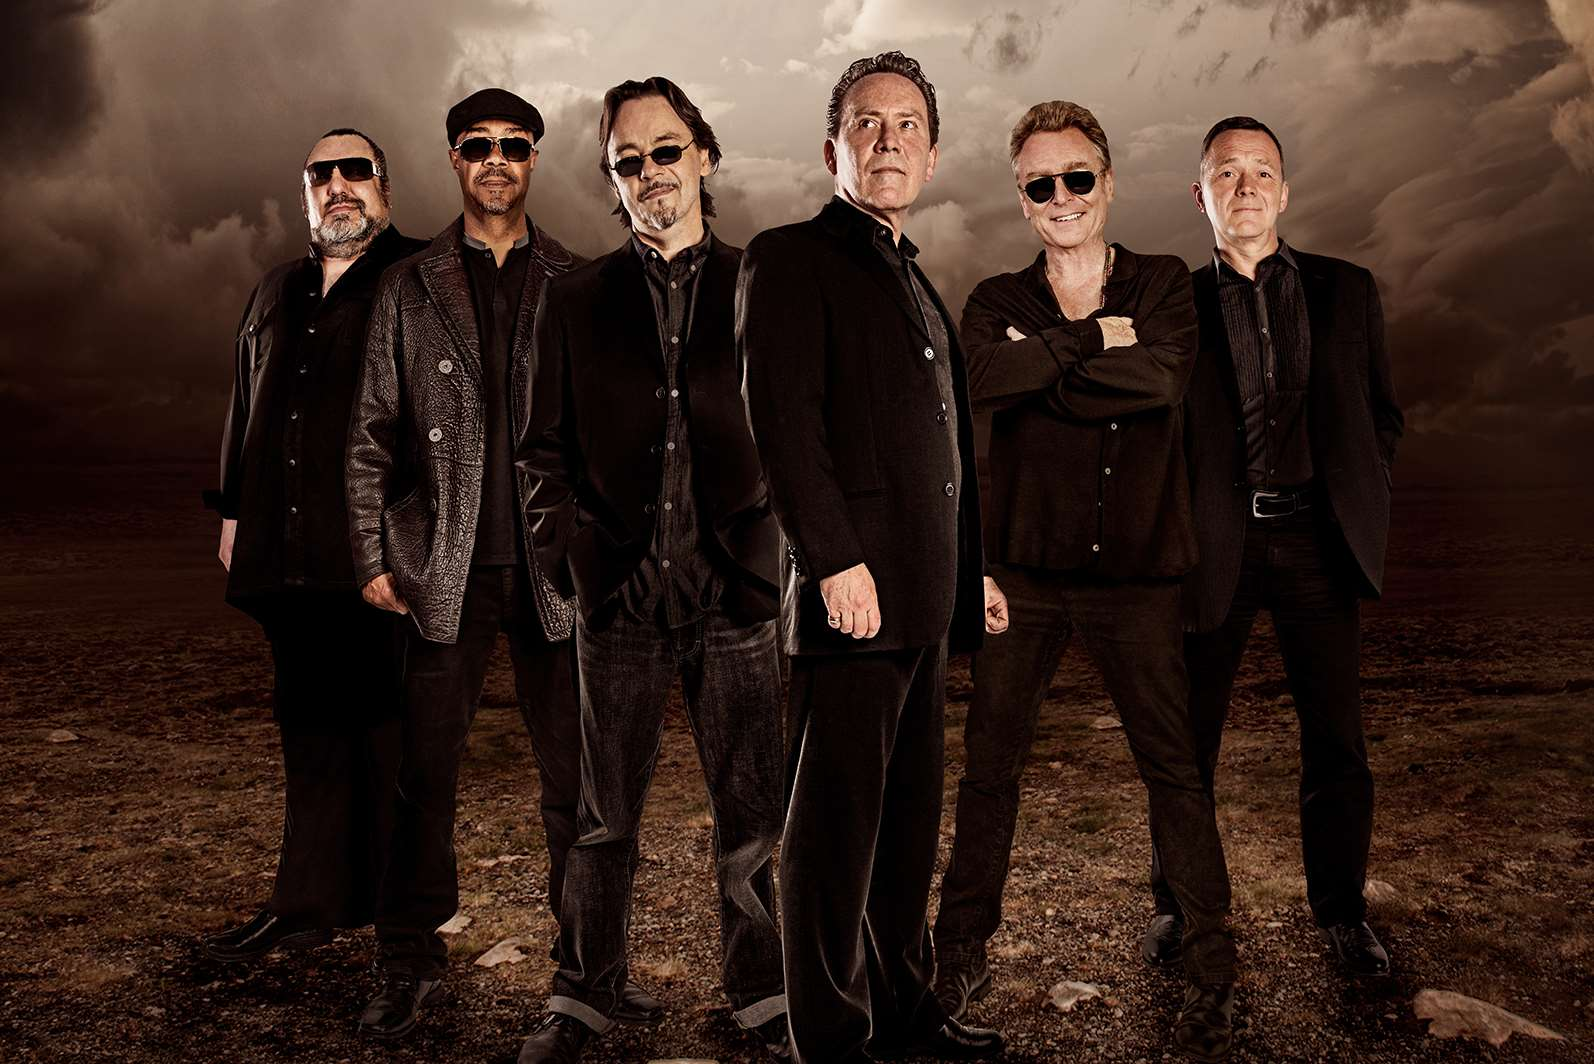 UB40 - coming to Margate's Winter Gardens in November 2014